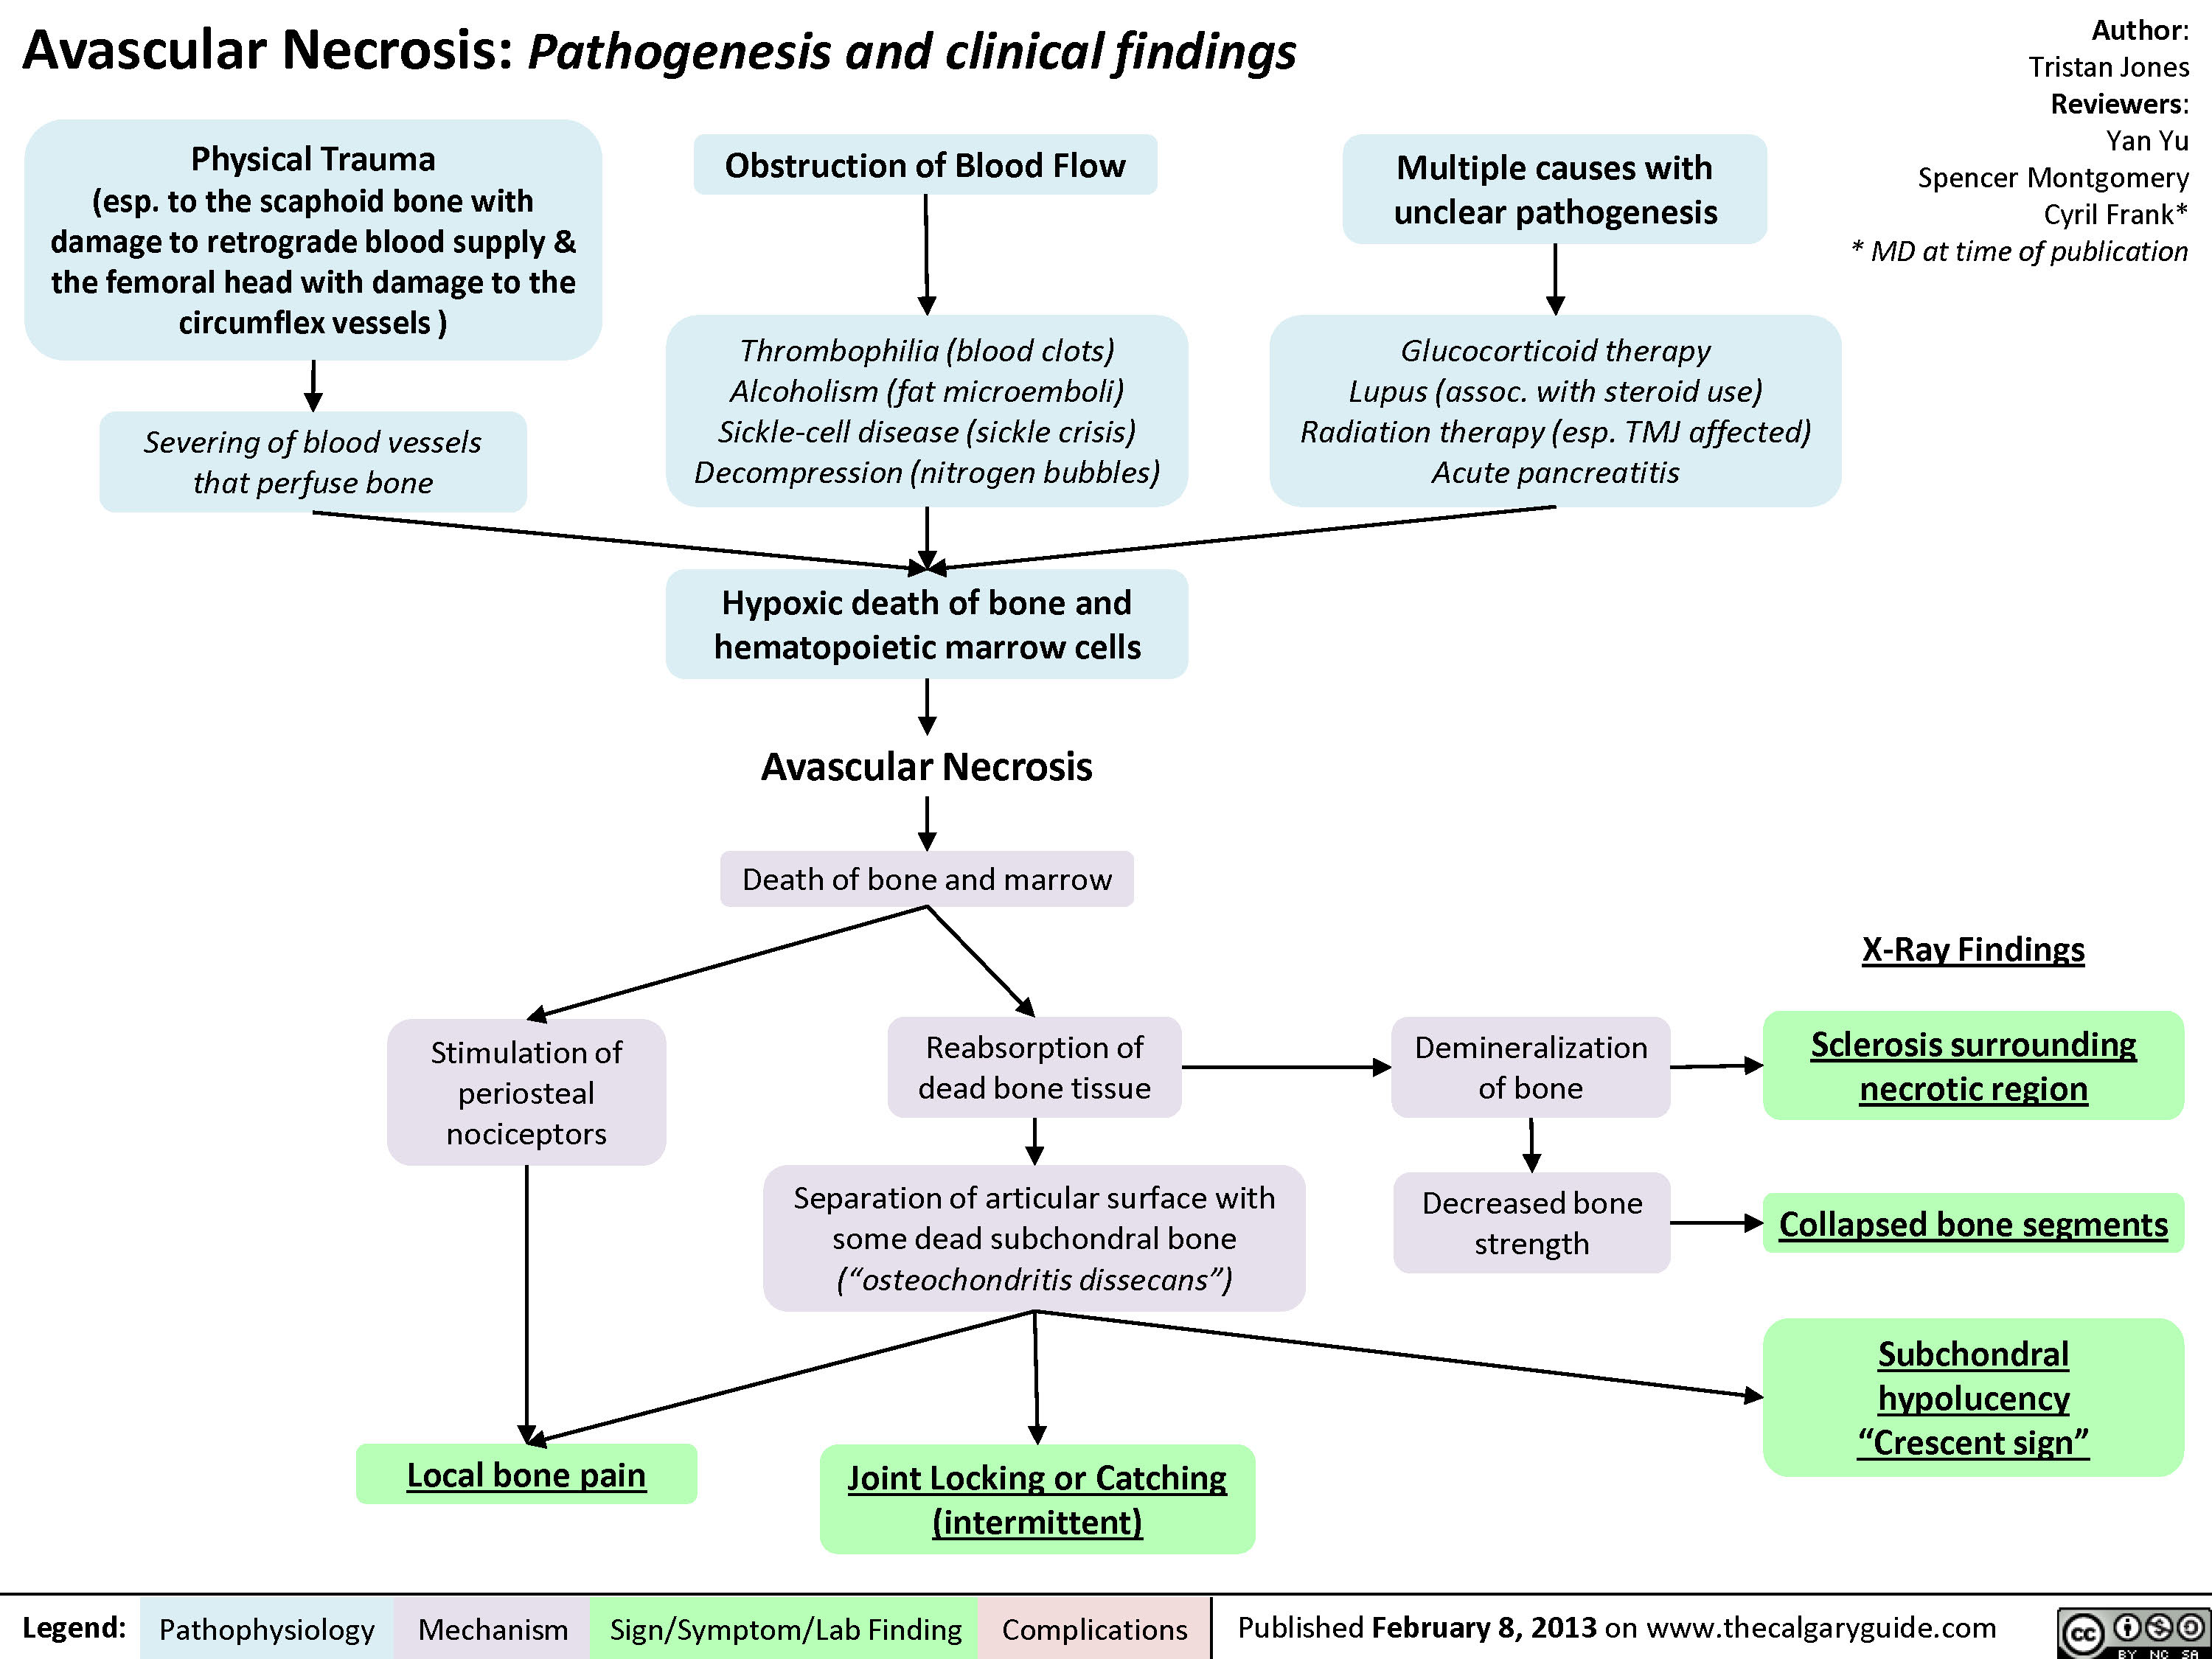 Avascular Necrosis - Pathogenesis and Clinical Findings